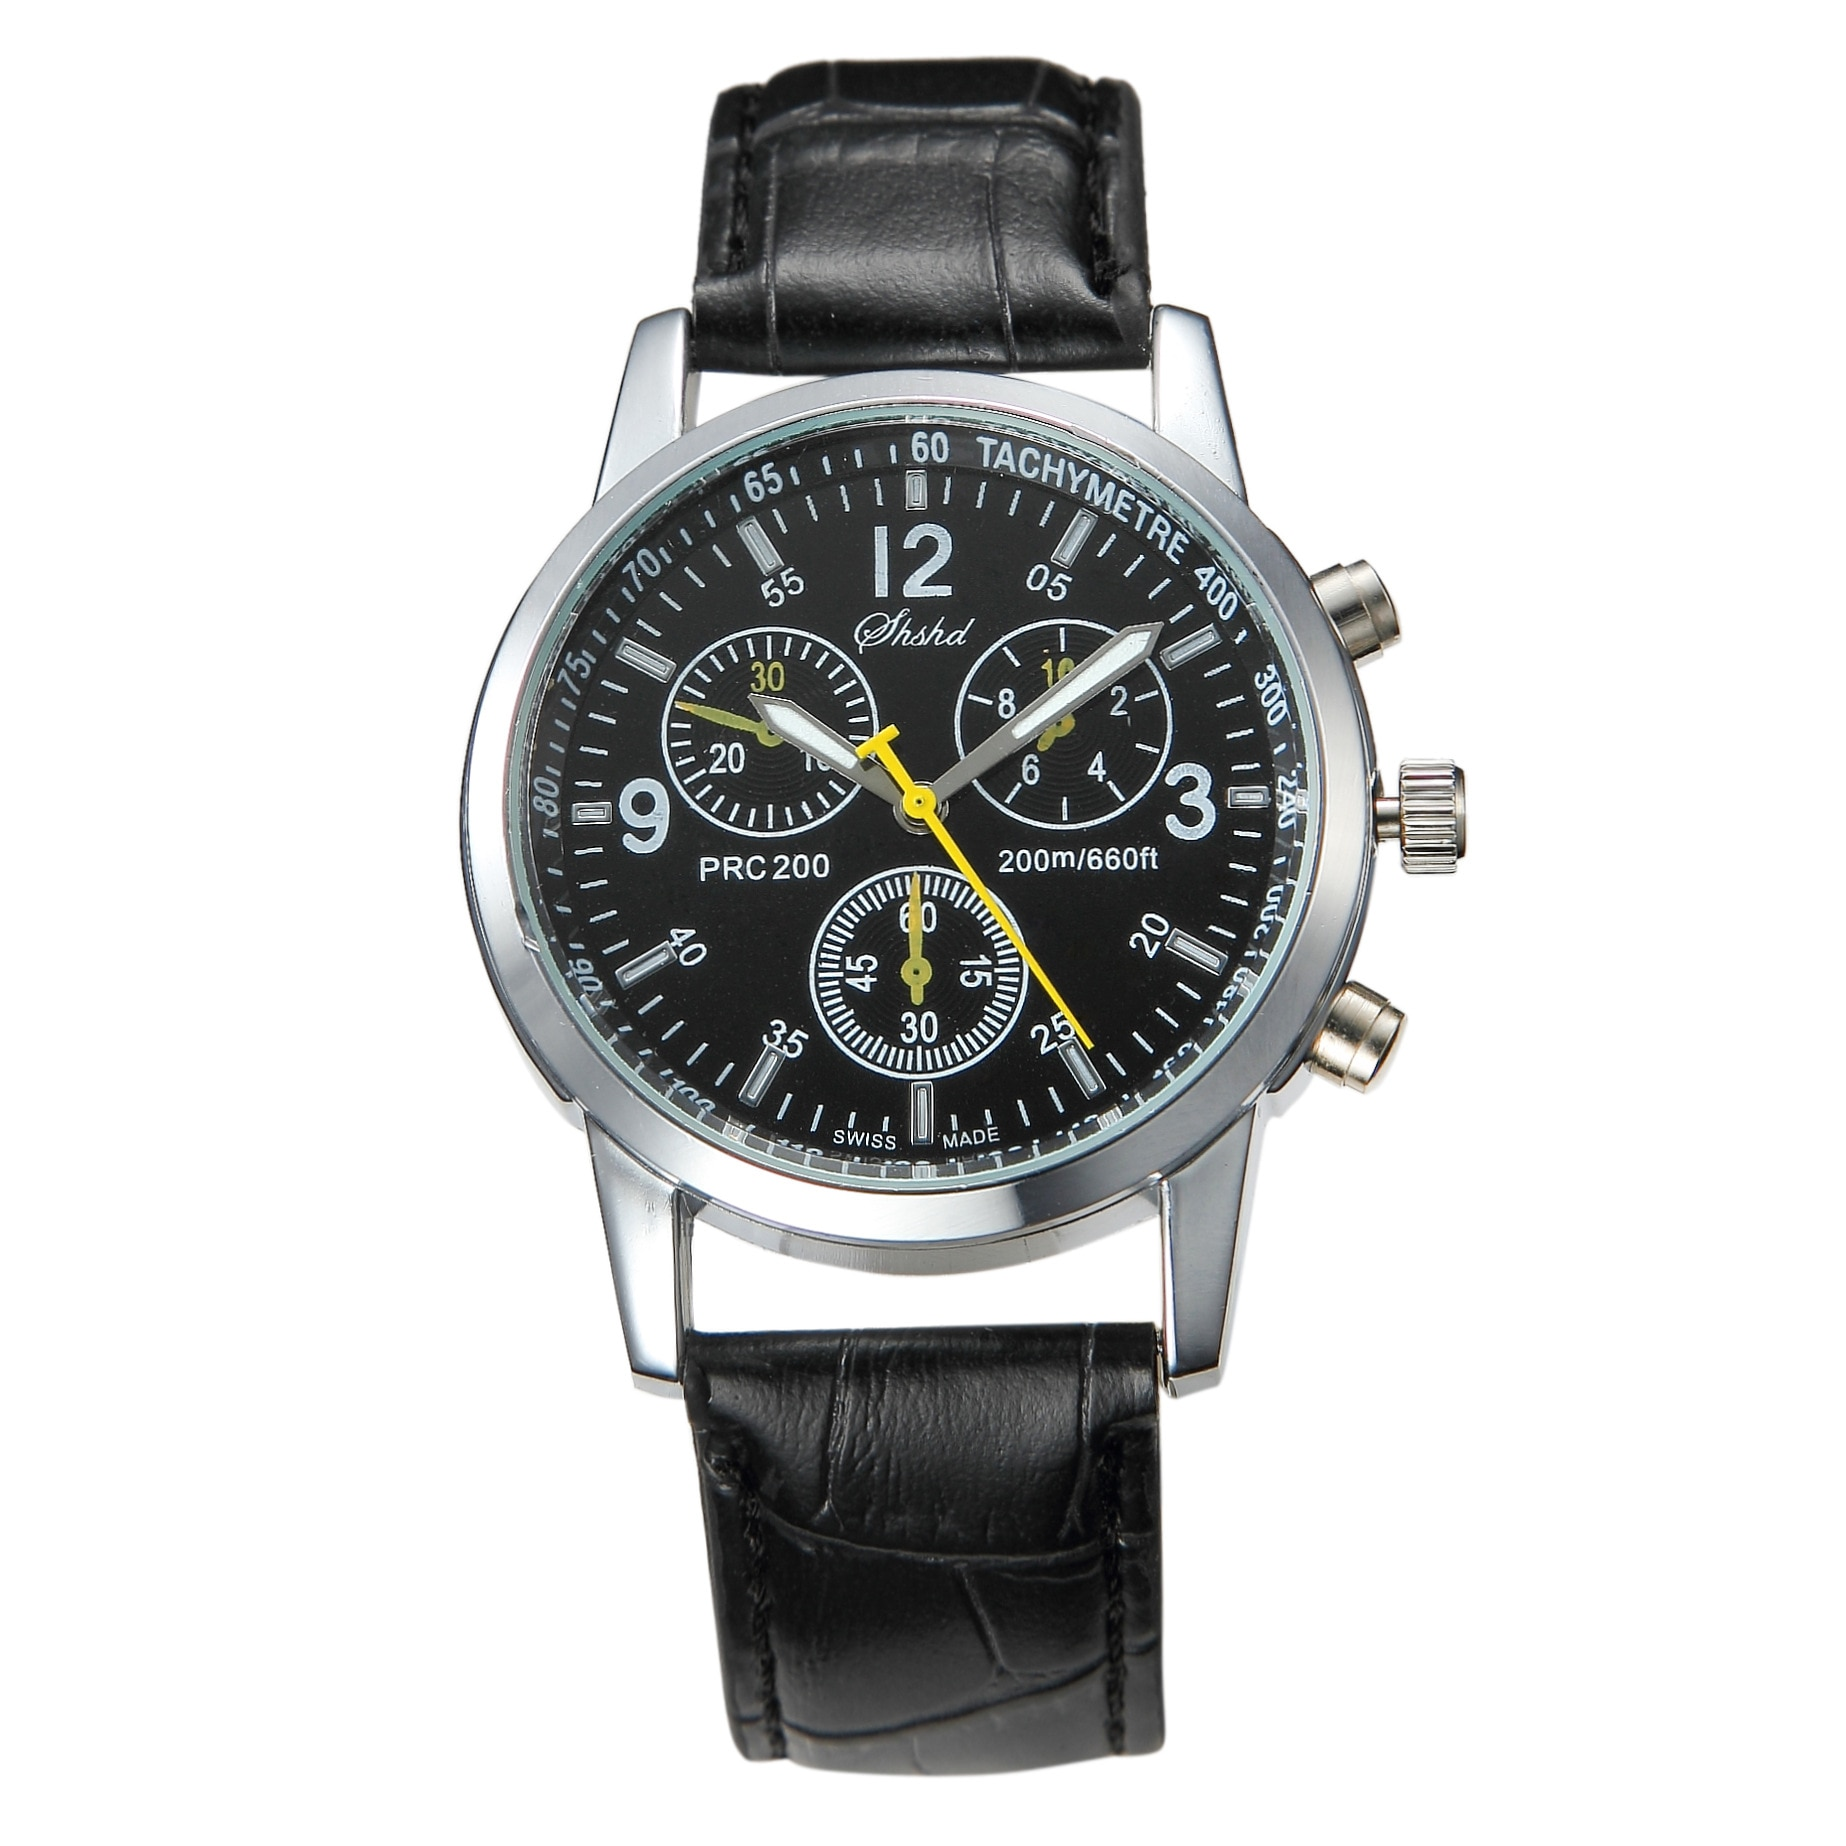 Fashionable casual men style and leisurely strap watch three eye six stitches leisure fashion activi